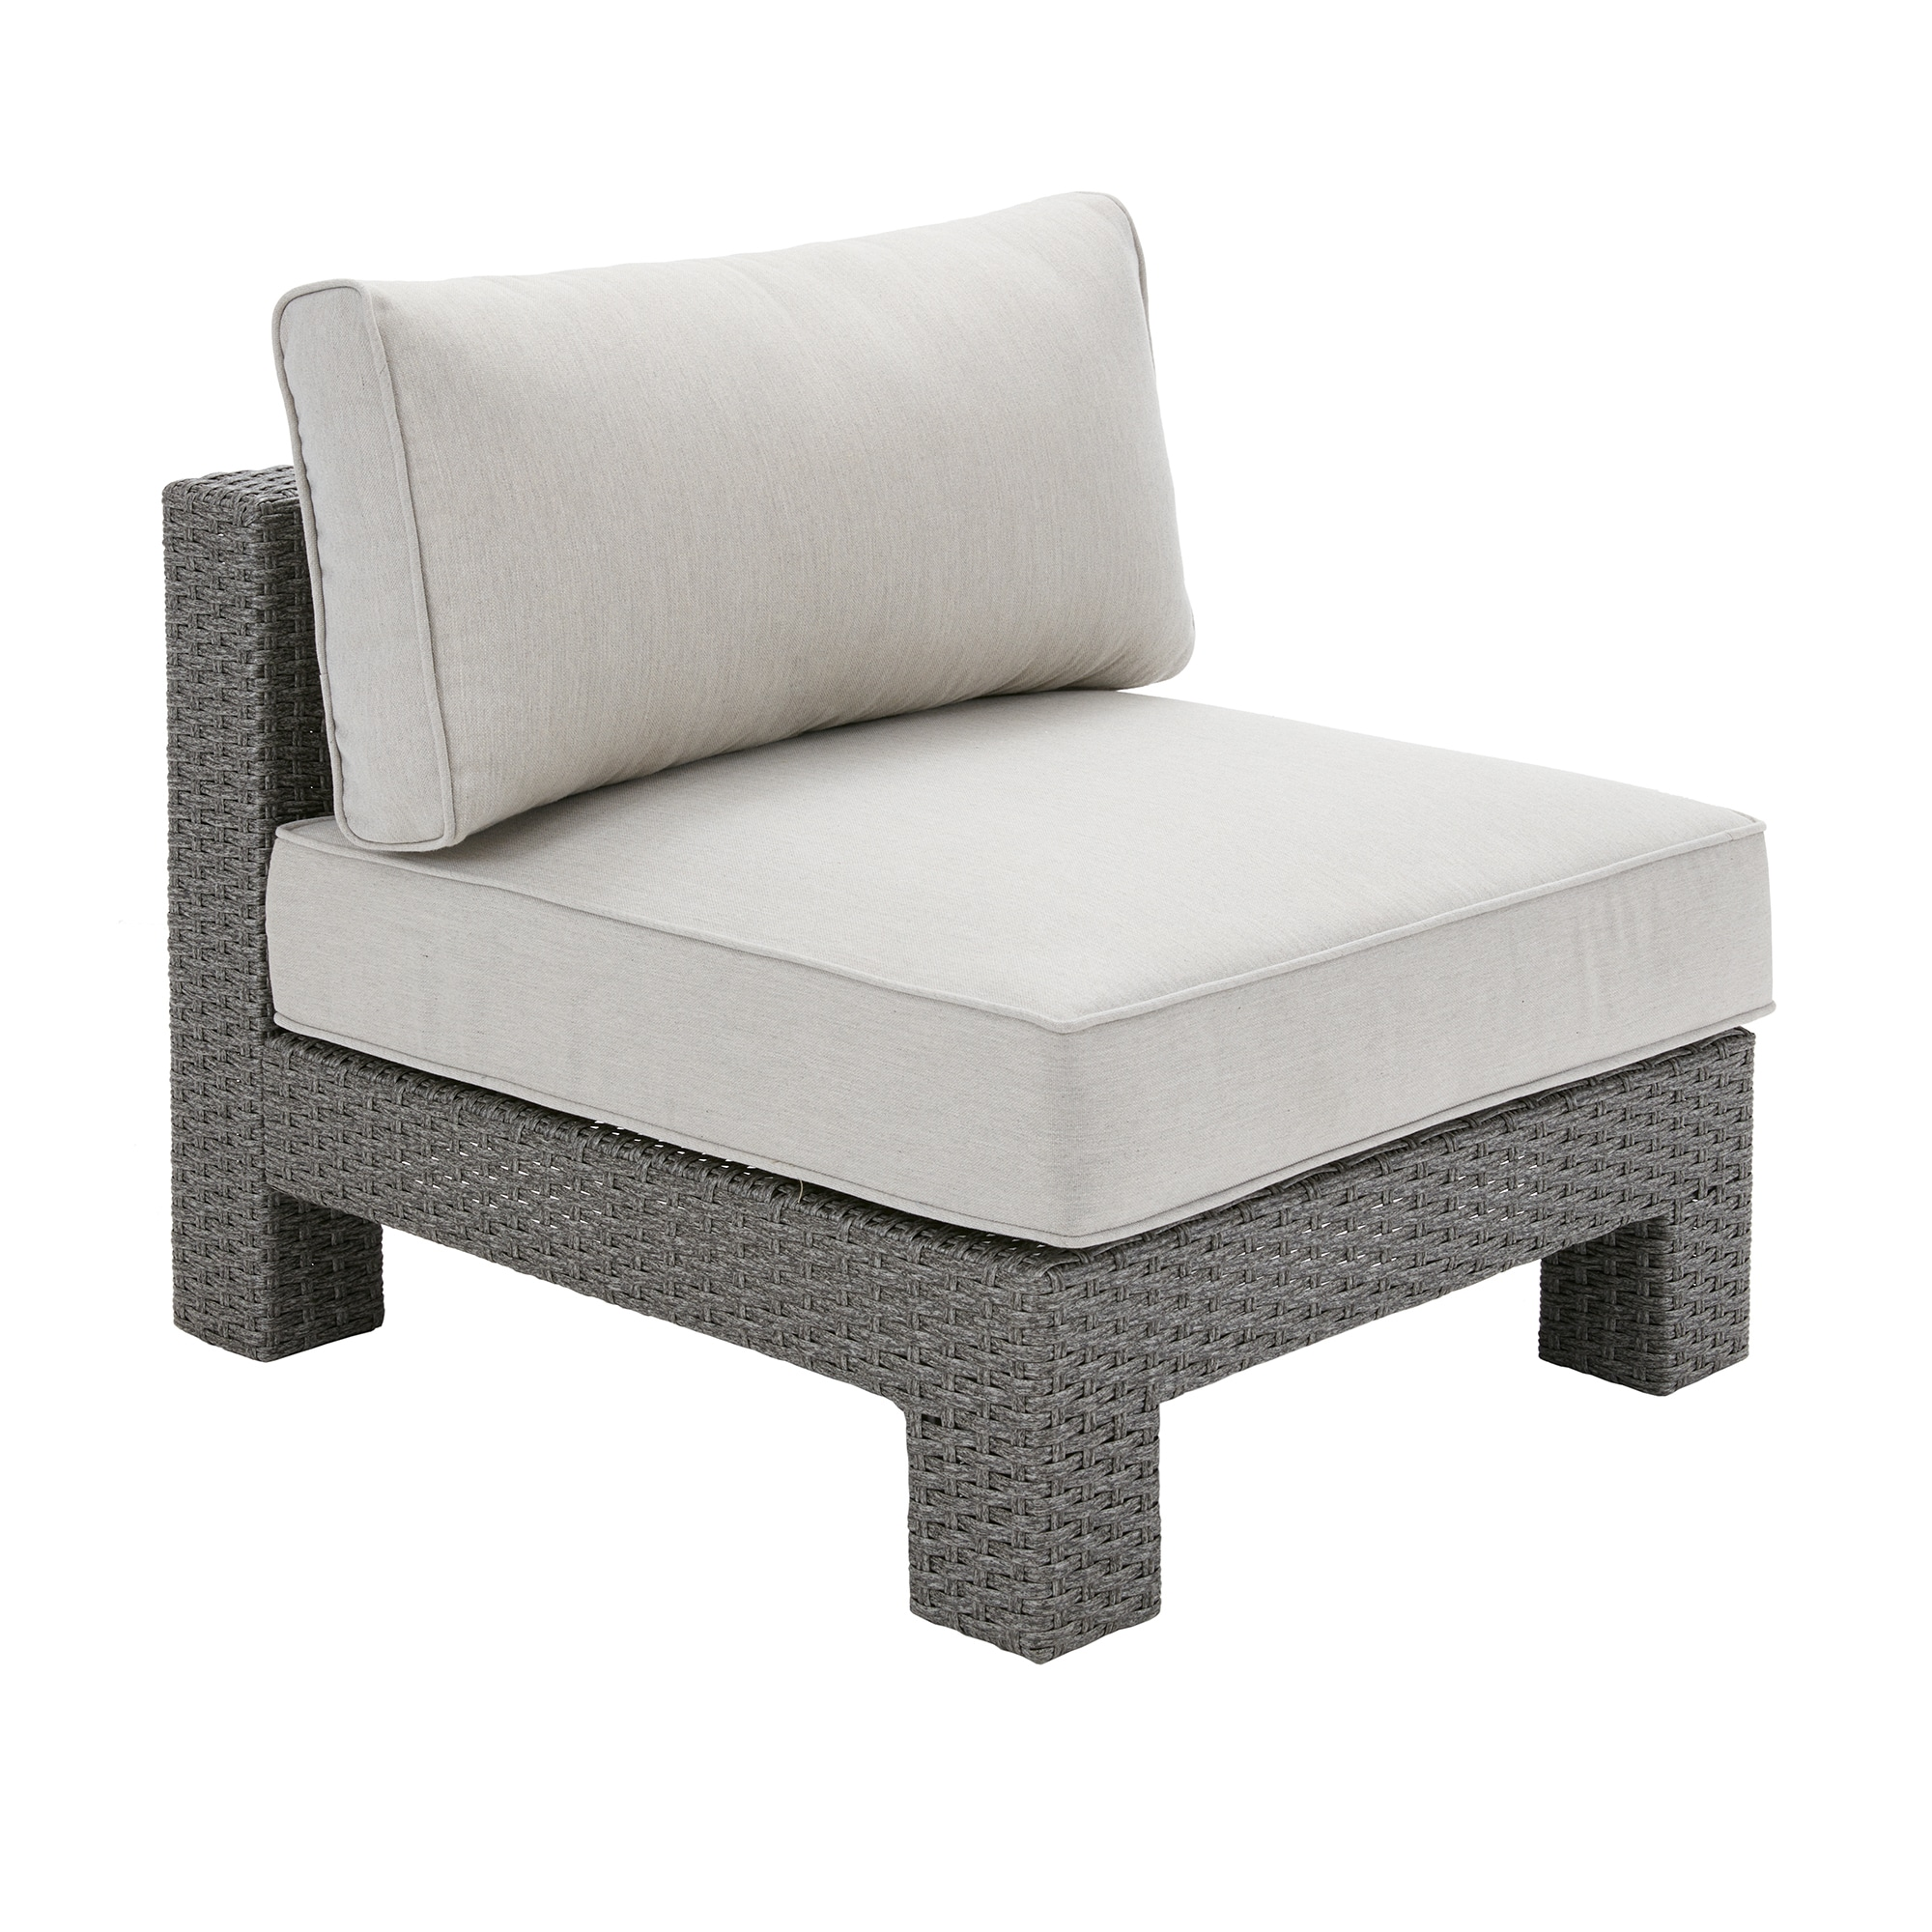 Outdoor Lounge Madison Park Perry Light Grey Outdoor Lounge Chair